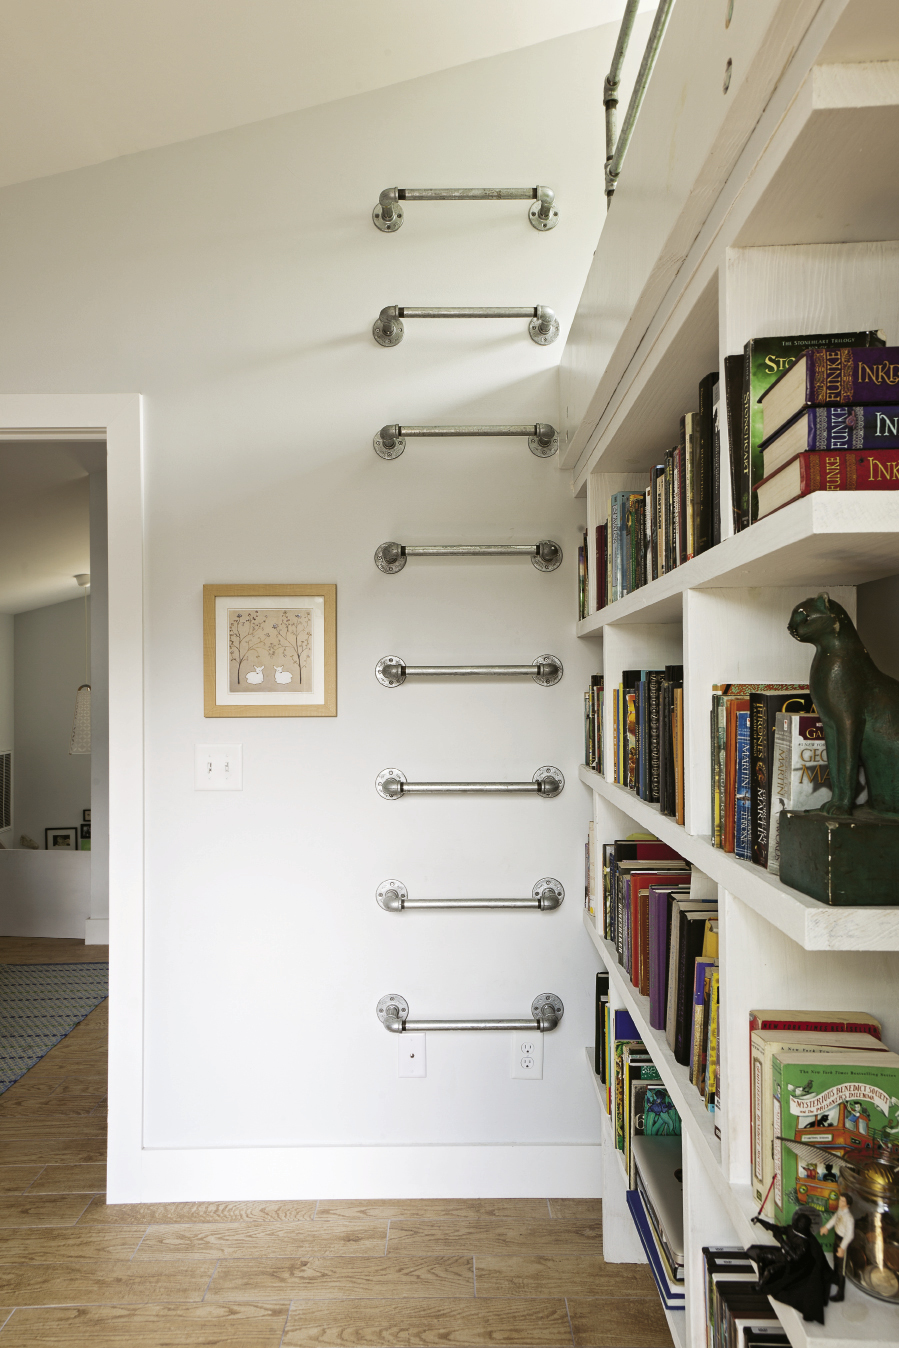 Wall-mounted ladders made of galvanized pipe are also space efficient.